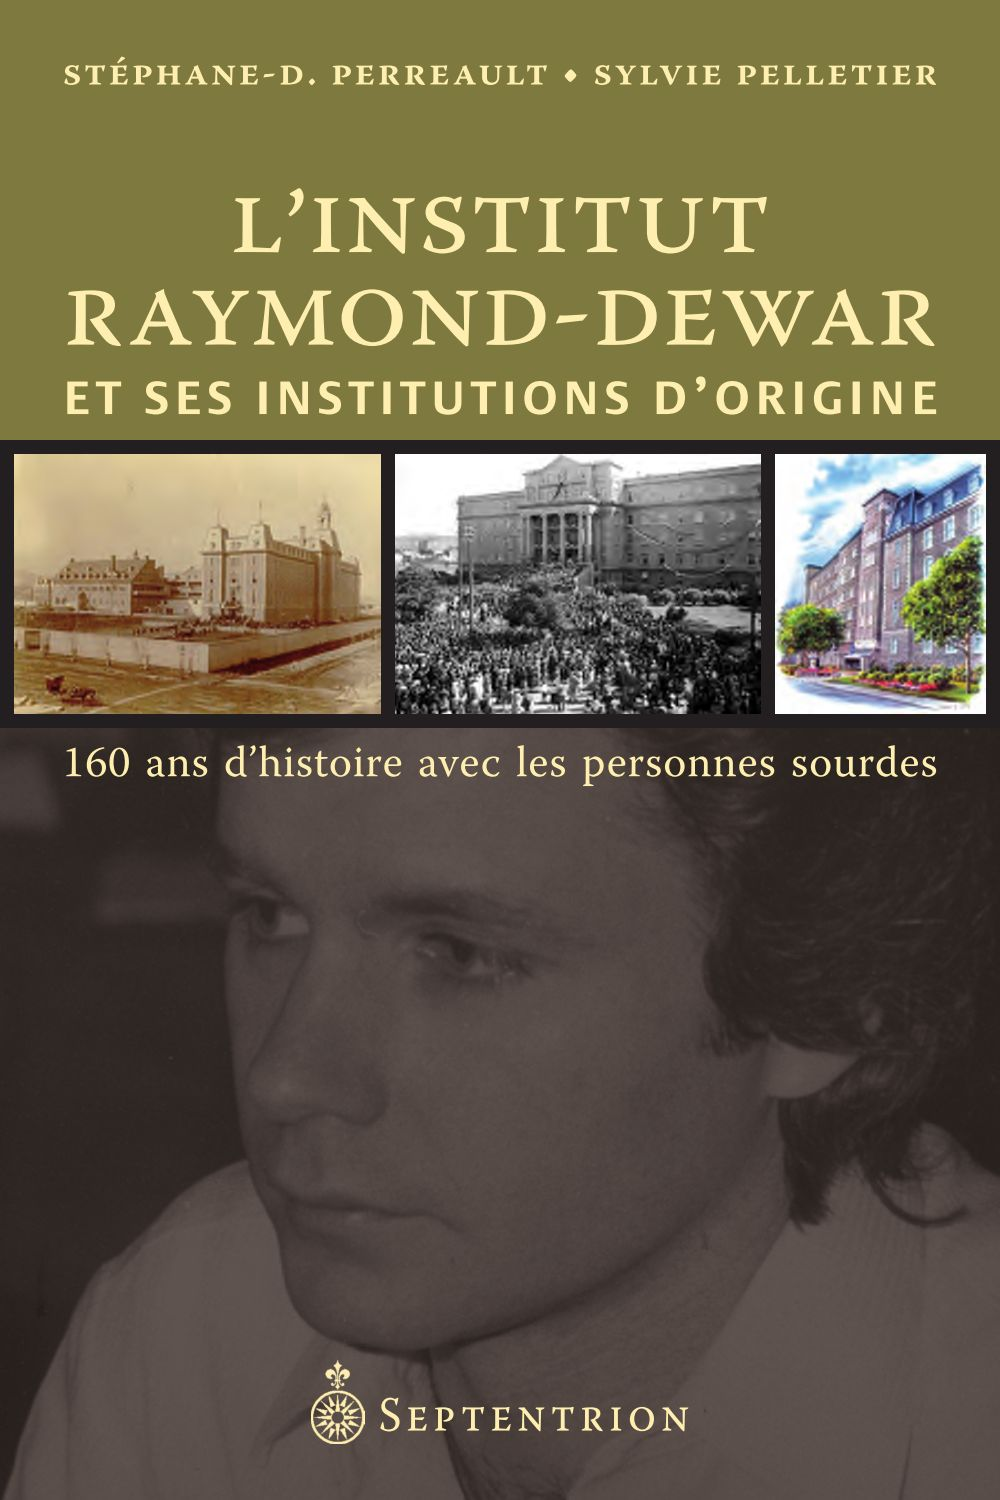 L'Institut Raymond-Dewar et ses institutions d'origine